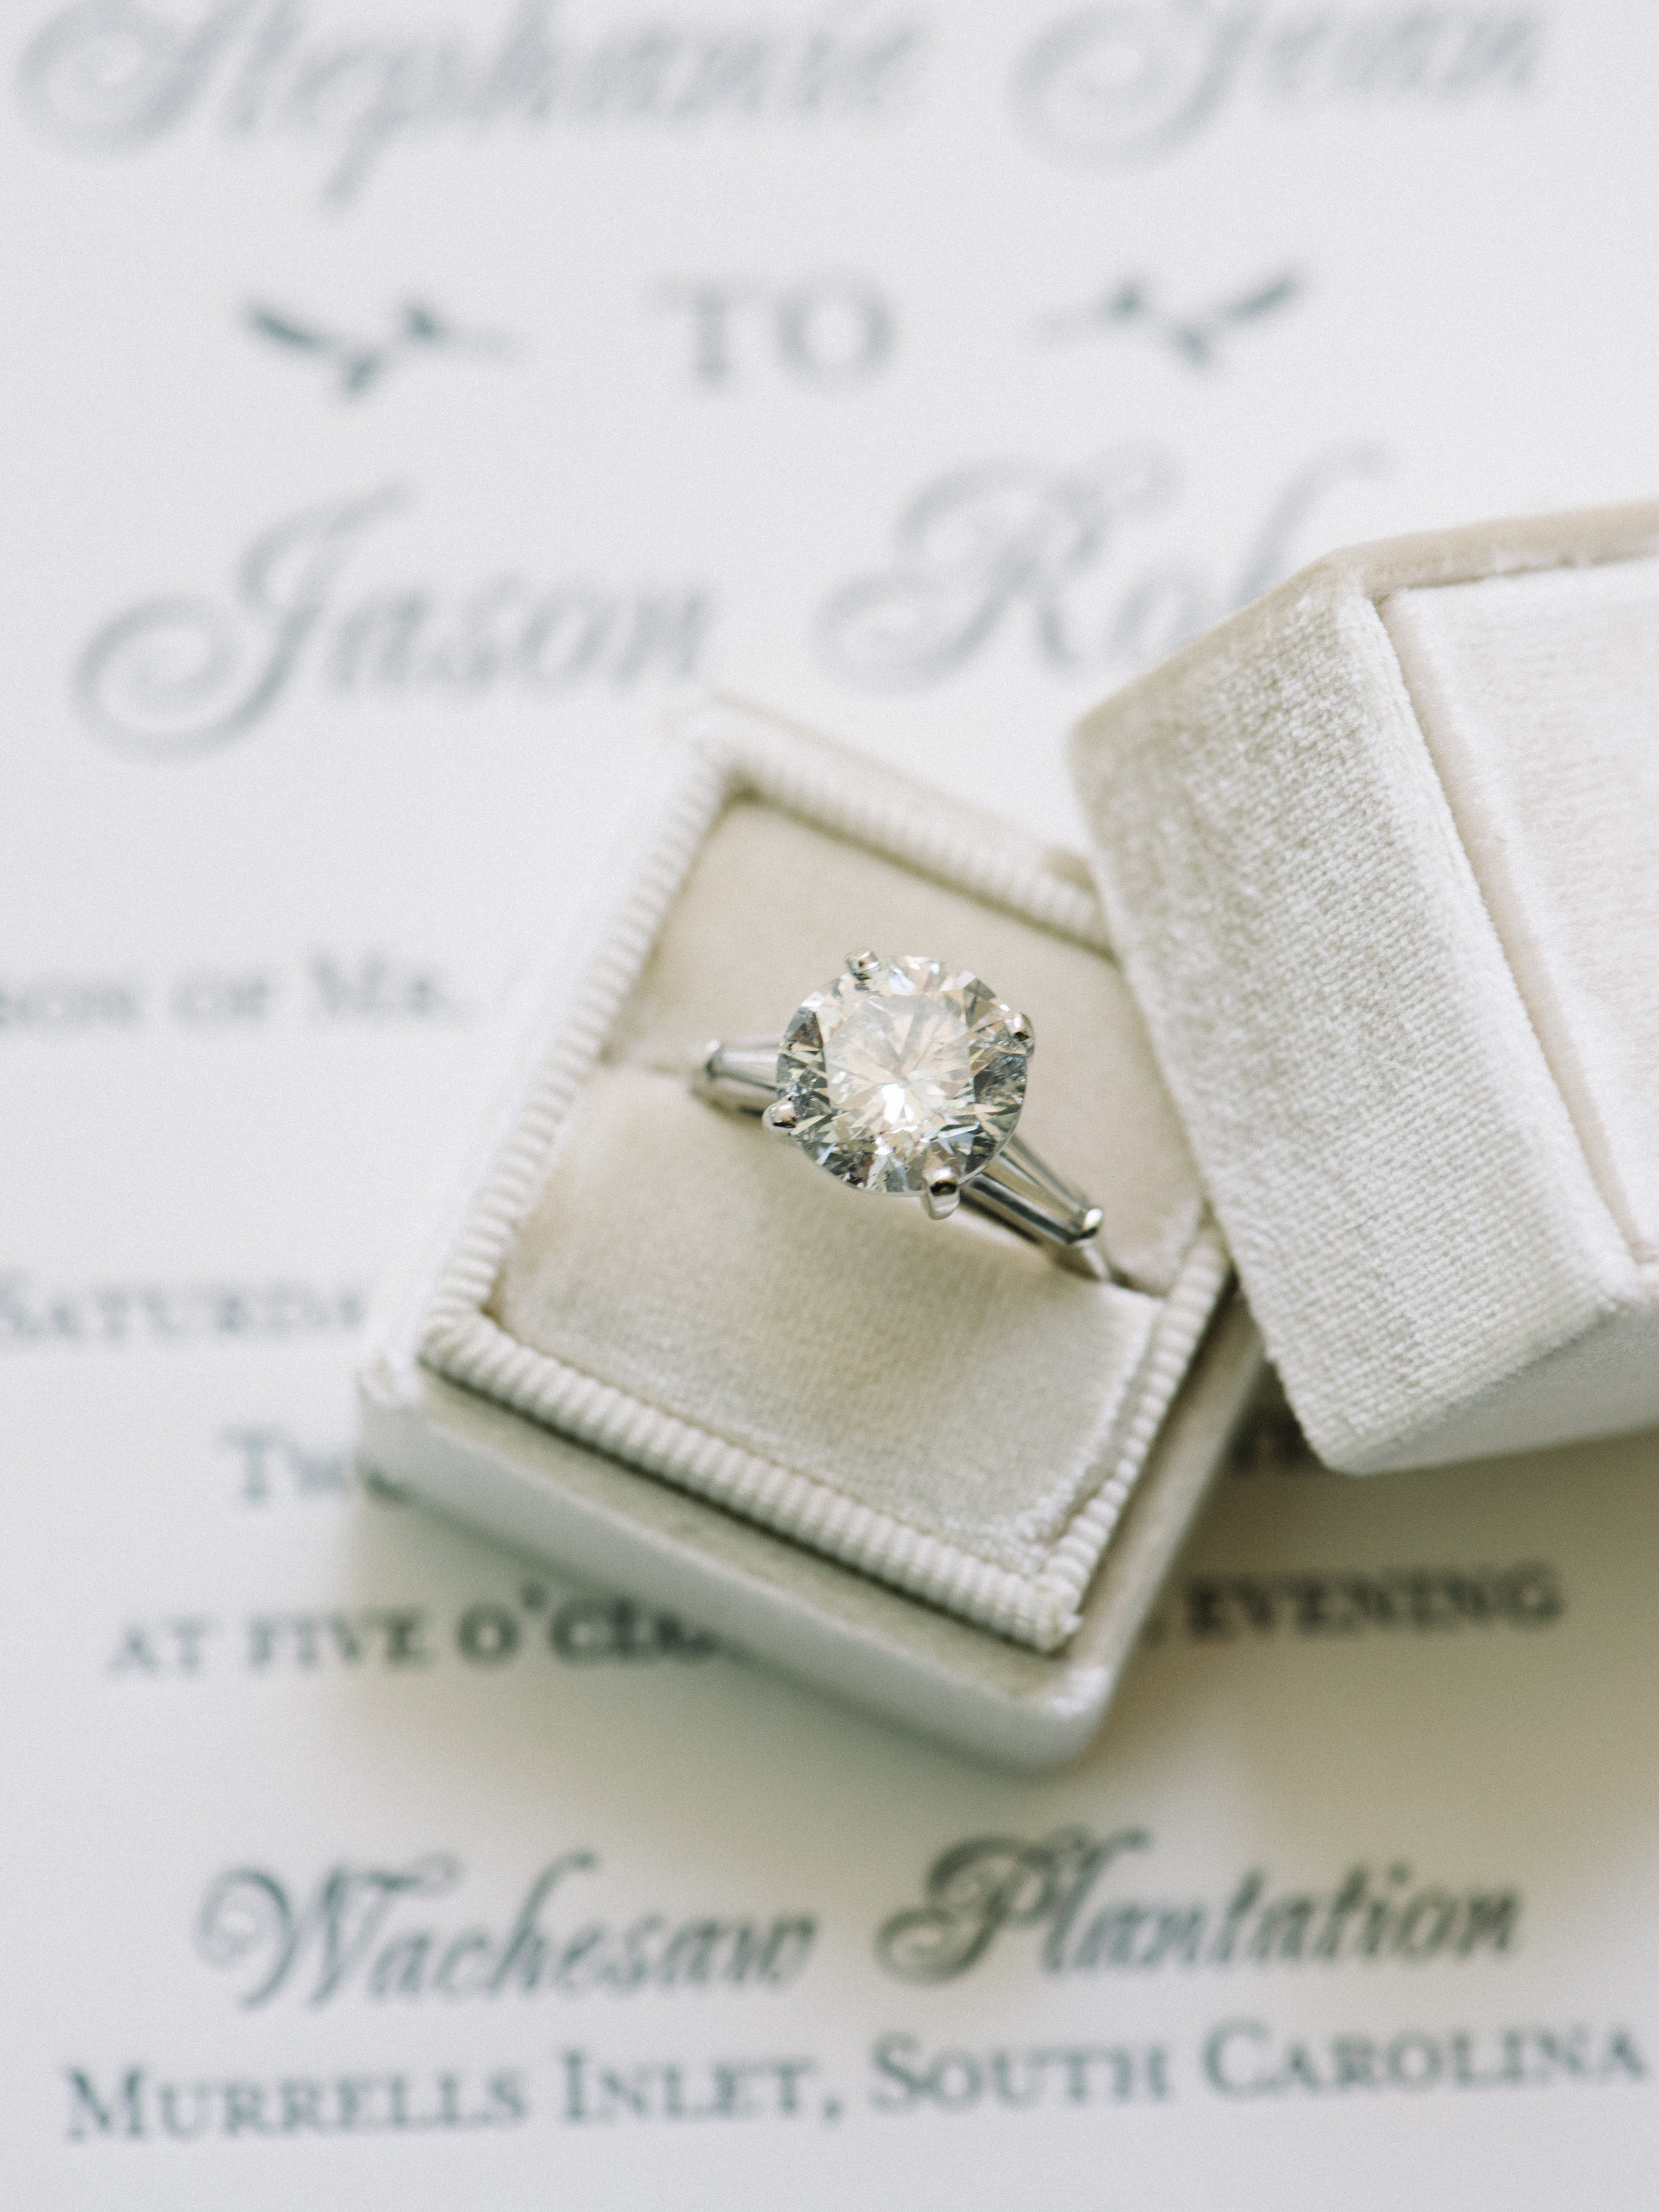 Myrtle Beach wedding details photographed by Pasha Belman Photographyy